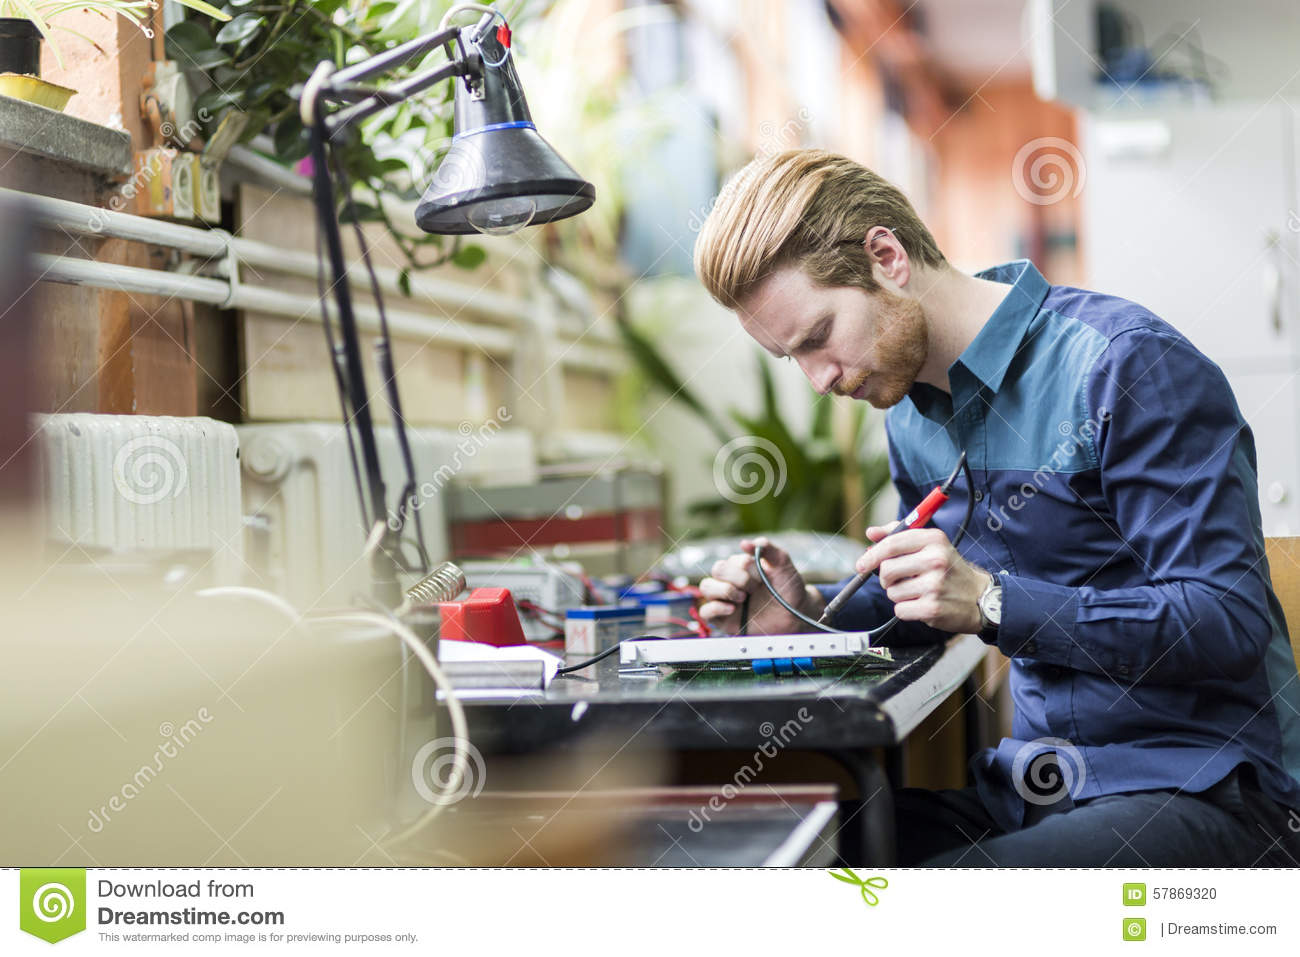 Young Handsome Man Soldering A Circuit Board Stock Photo  Image 57869320